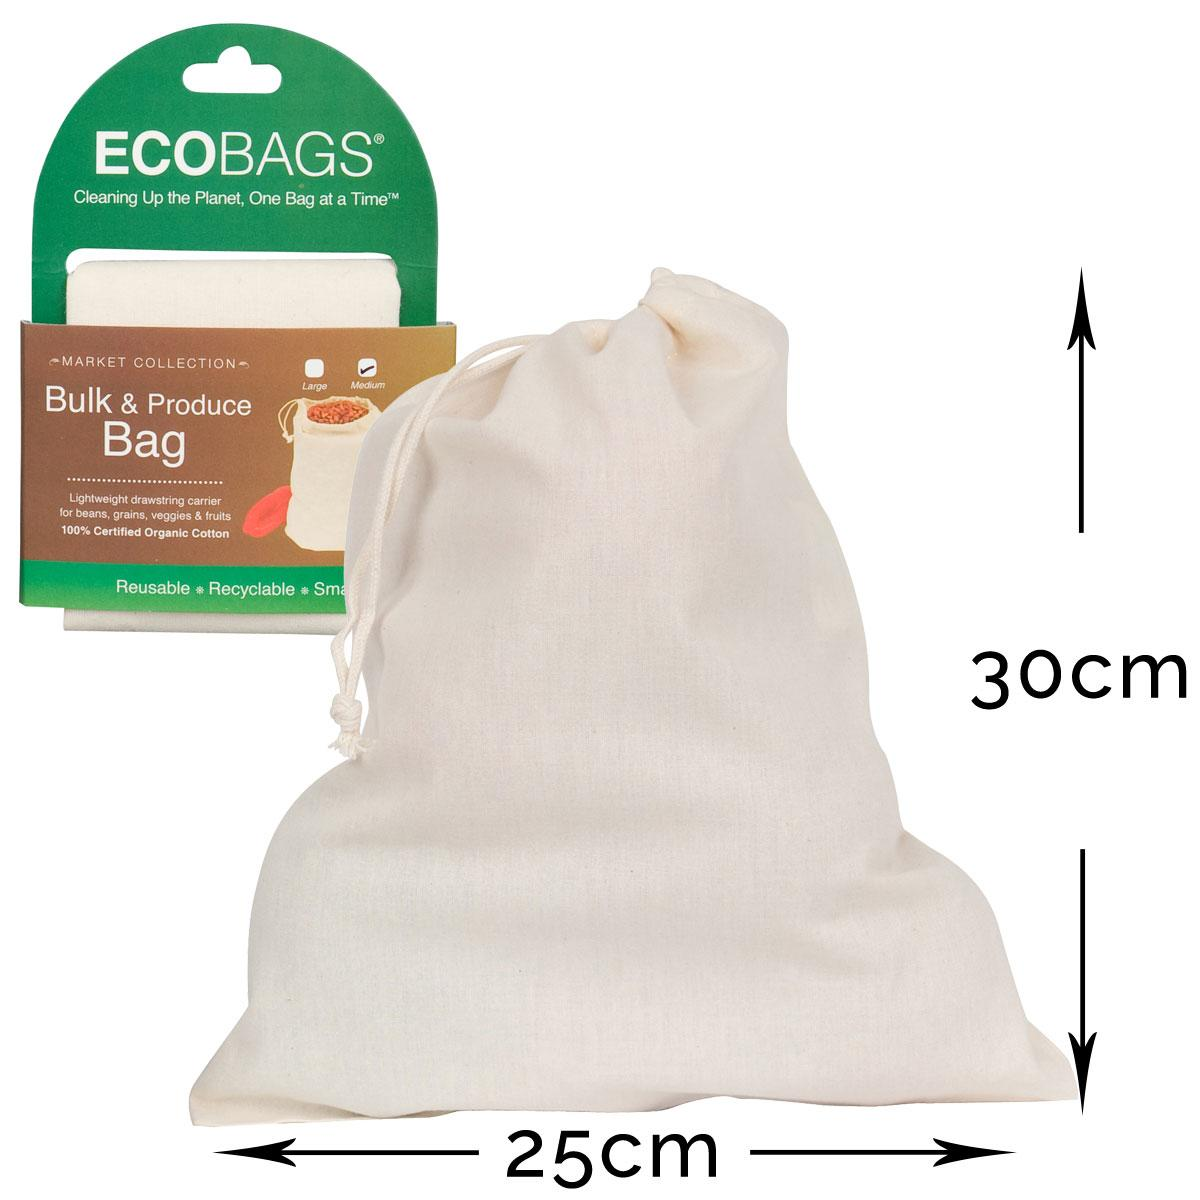 ECOBAGS Reusable Cotton Grocery Bag - Measurements